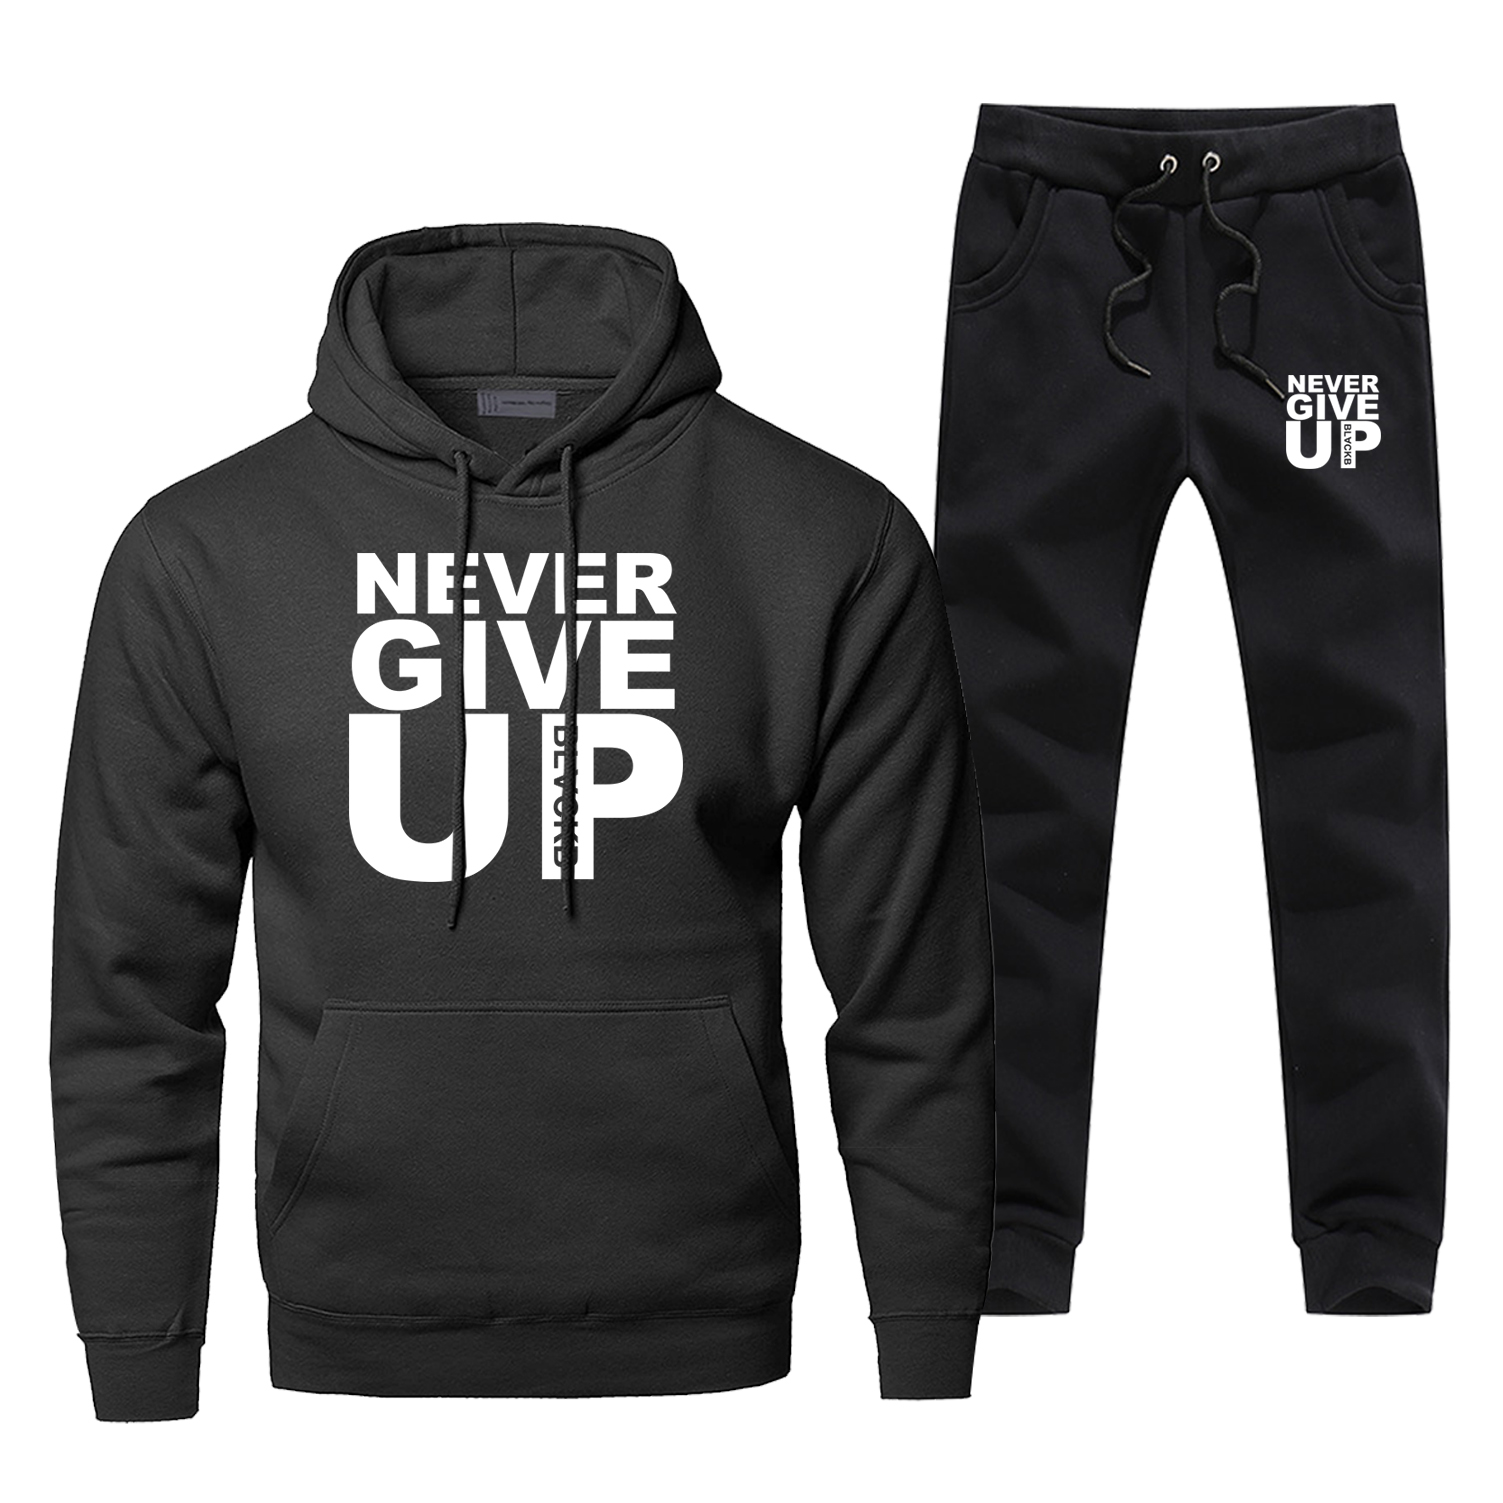 Men Hoodies Sets Two Piece Pant Never Give Up Mens Hoodies Sweatshirt Blackb Sweatpants Streetwear Sportswear Male Sweatshirts